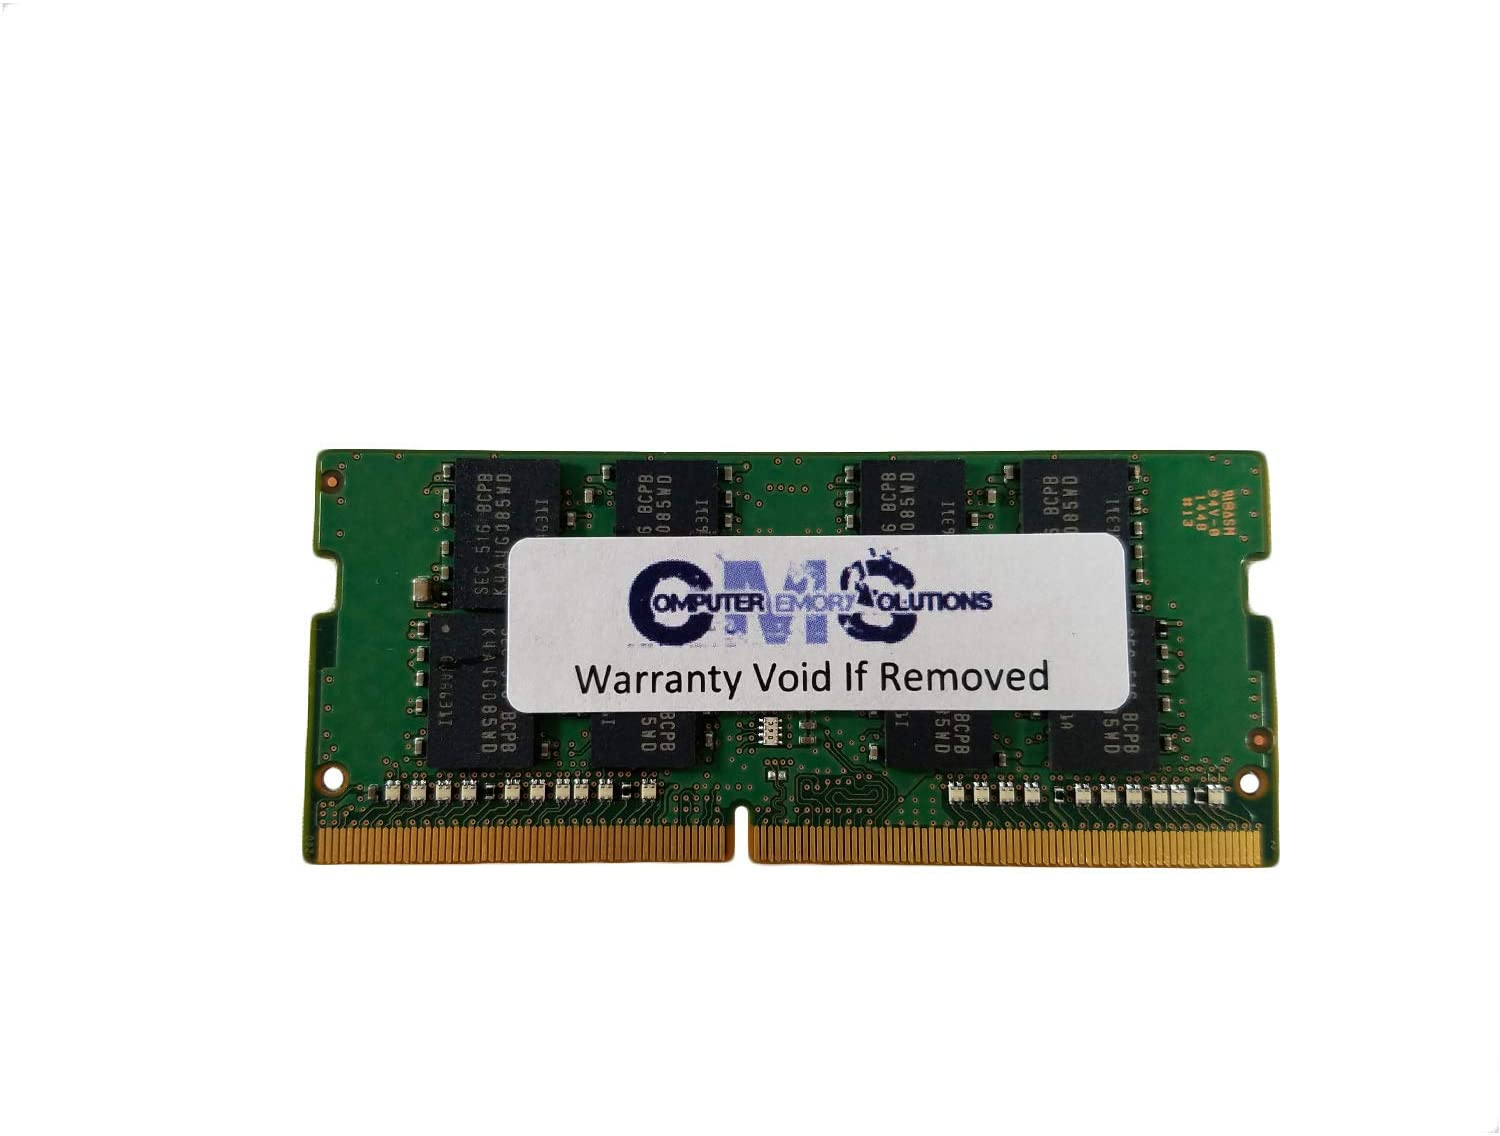 8GB (1X8GB) Memory Ram Compatible with Acer Aspire 5 A515-43G, A515-43-R19L, A515-43-R4Z2, A515-43-R5RE by CMS c106